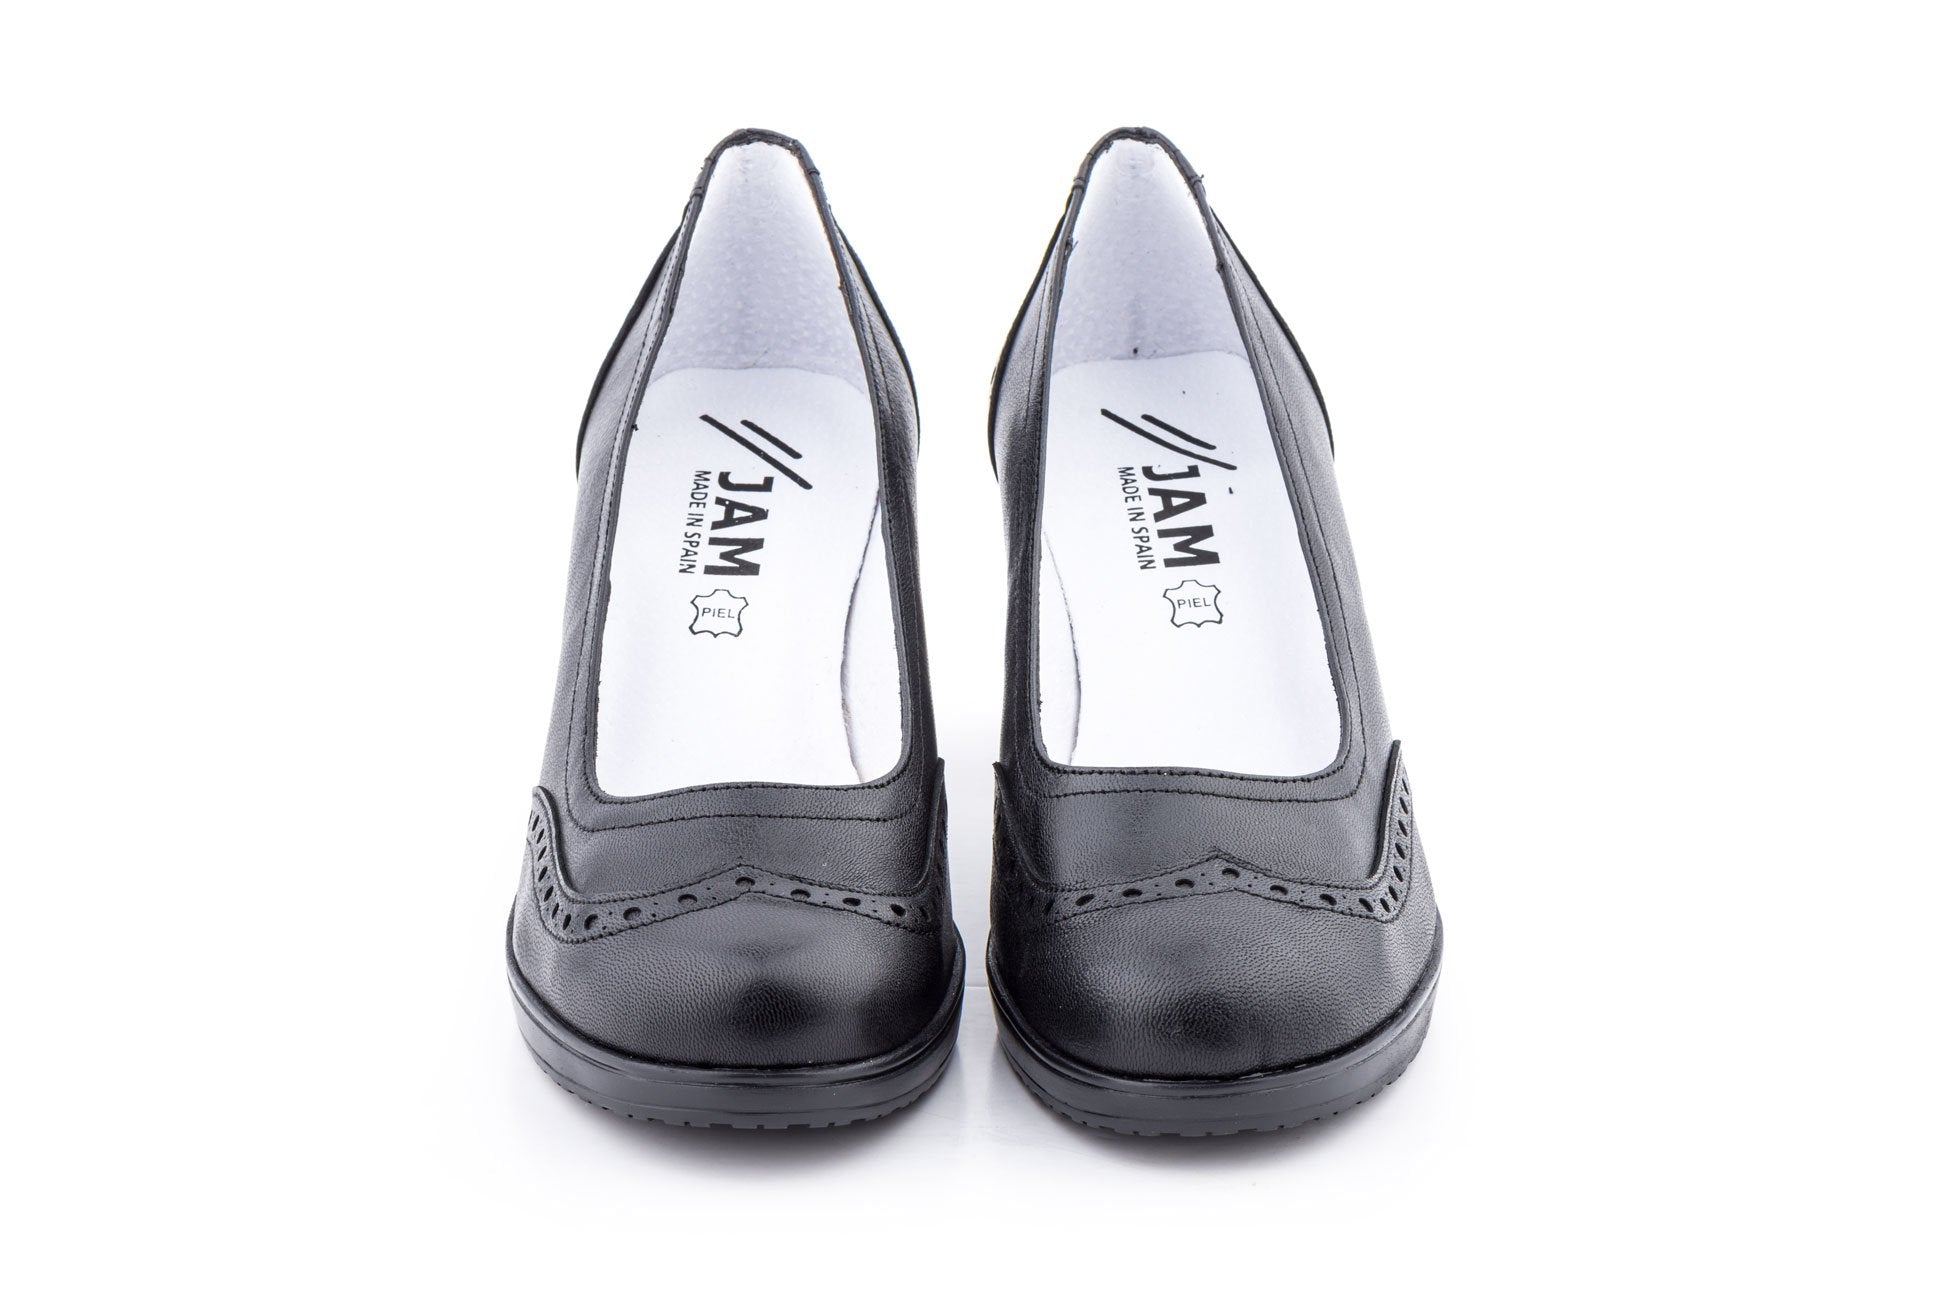 JAM-LEATHER MARY JANE PUMP-MADE IN SPAIN